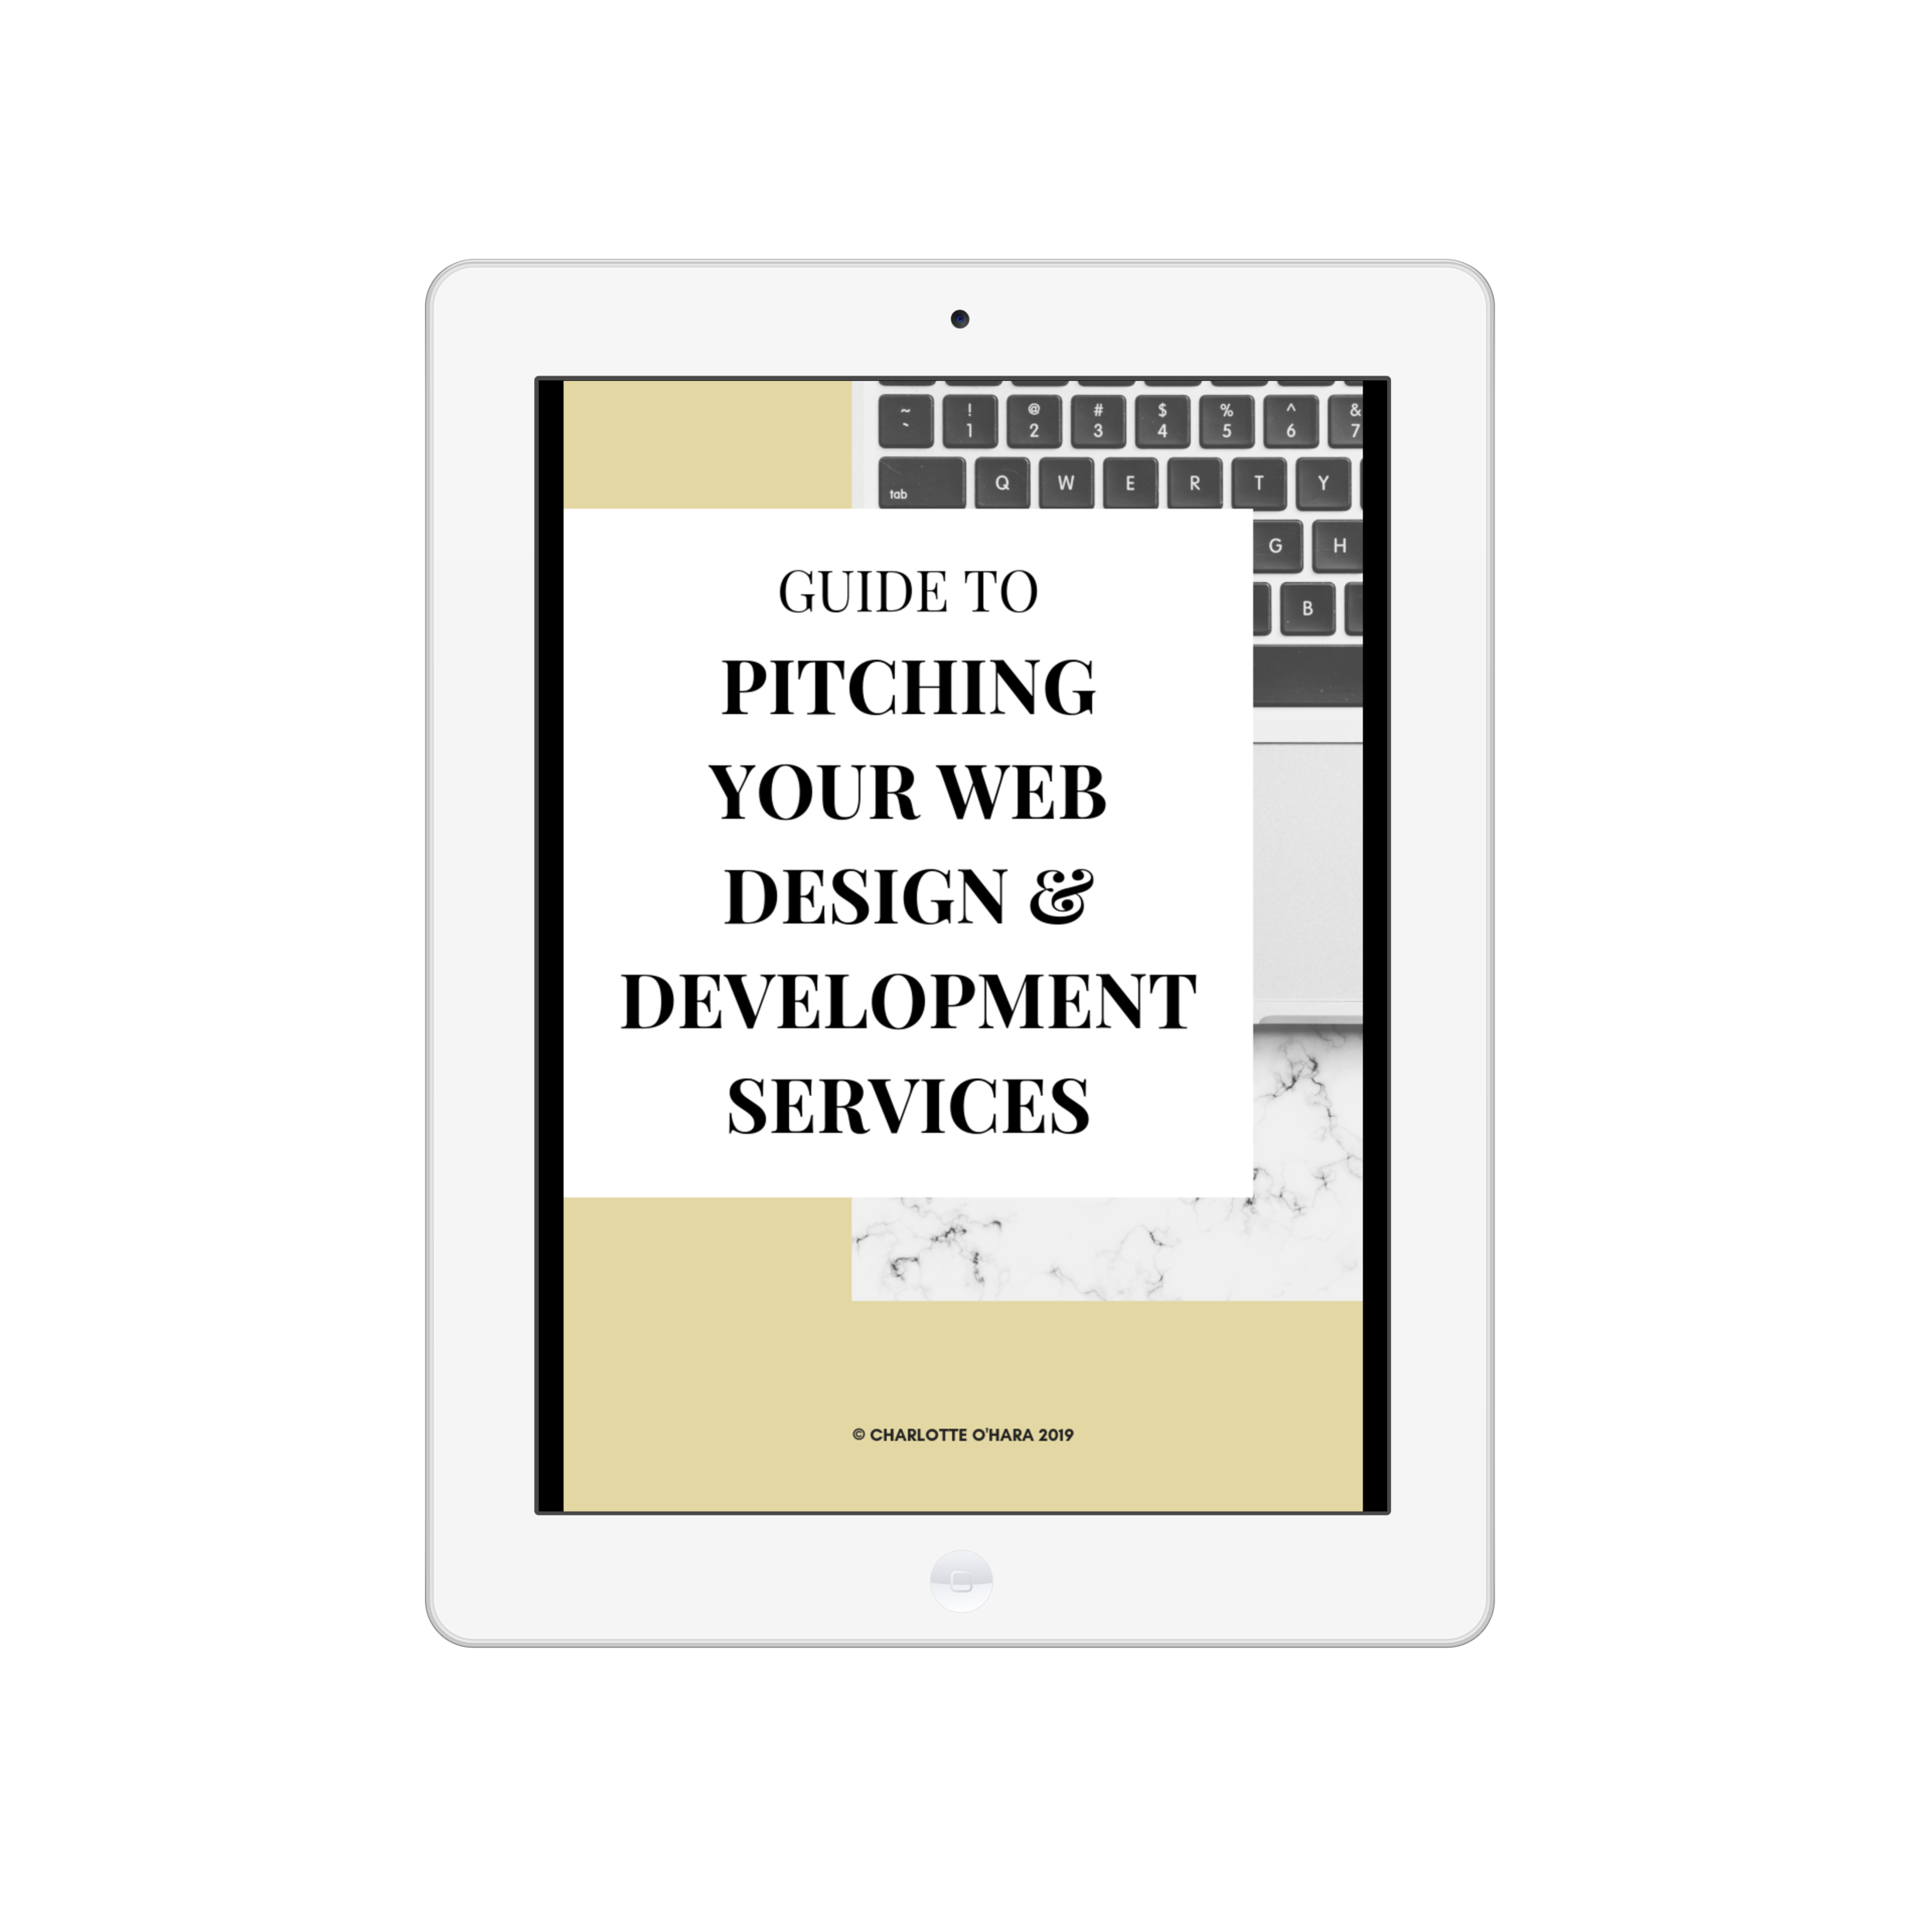 Guide to pitching your web design & development services